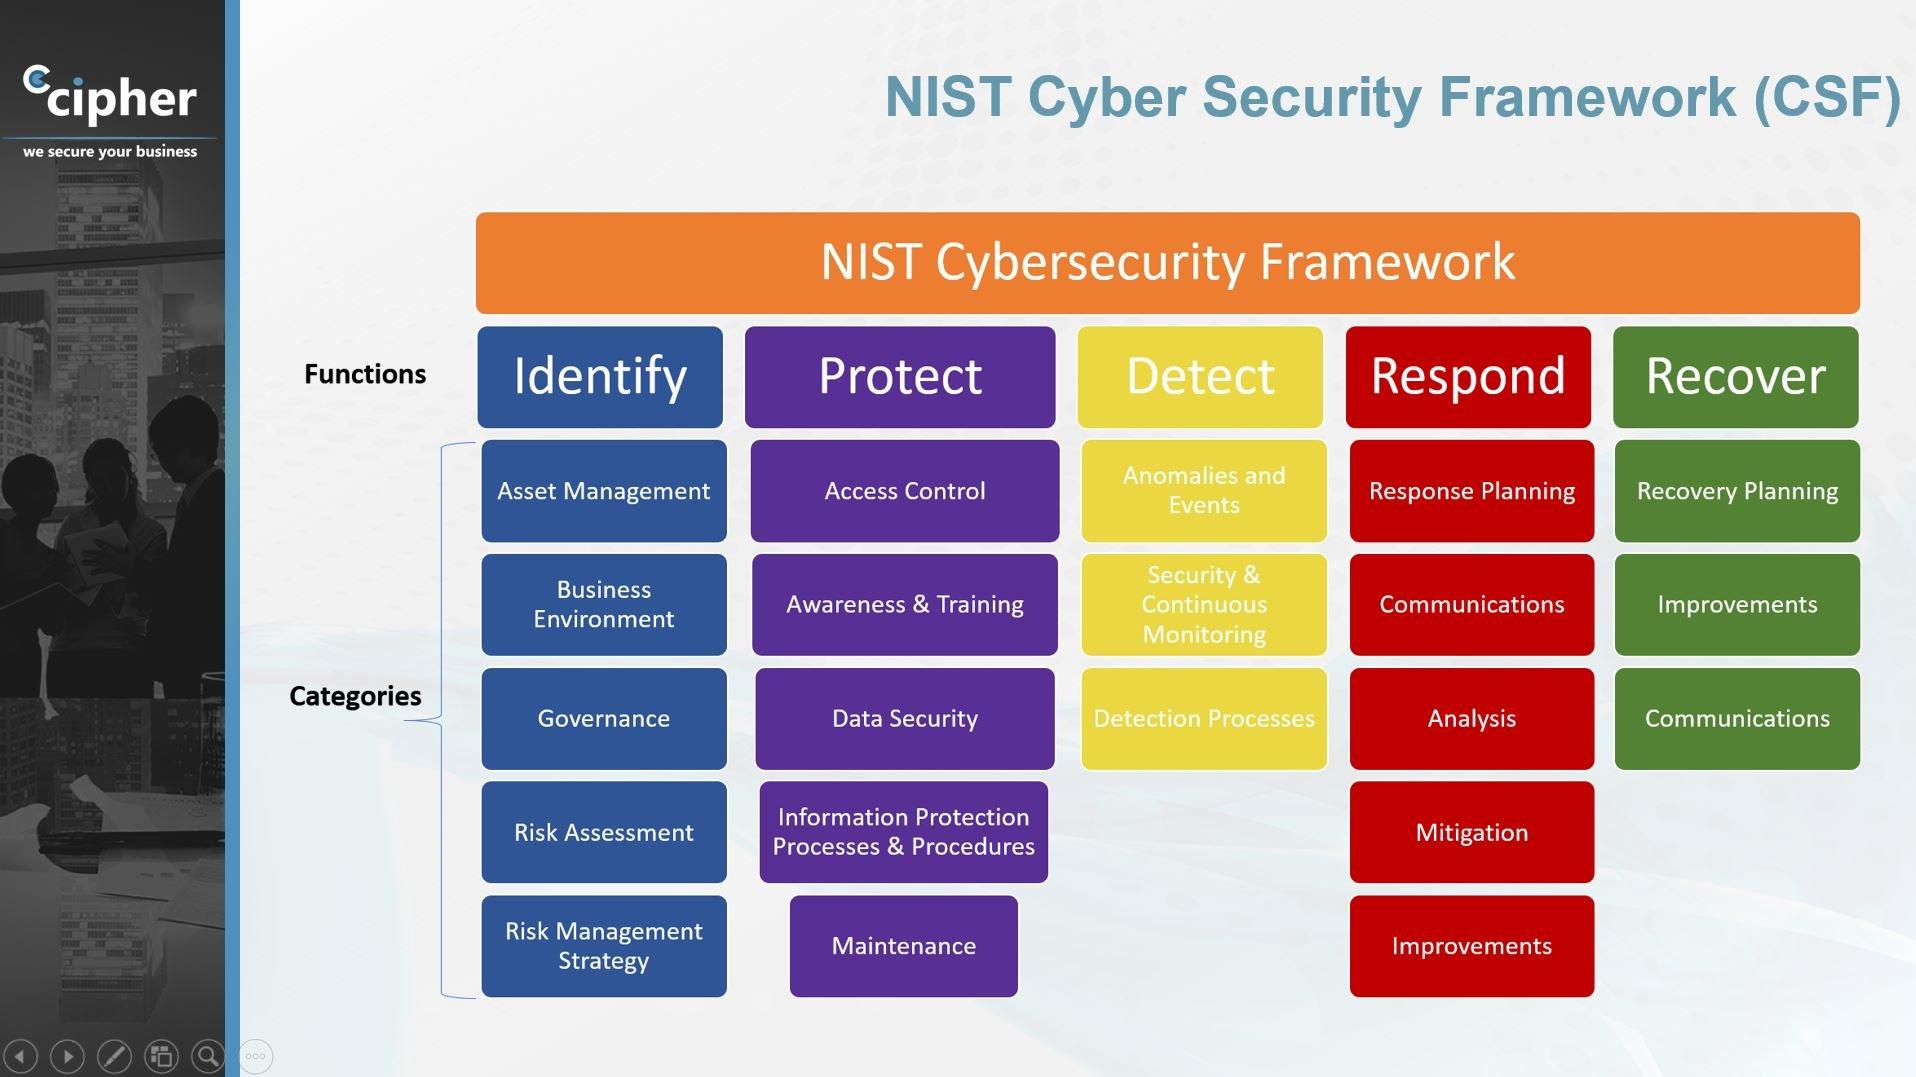 NIST Cybersecurity Framework Summary